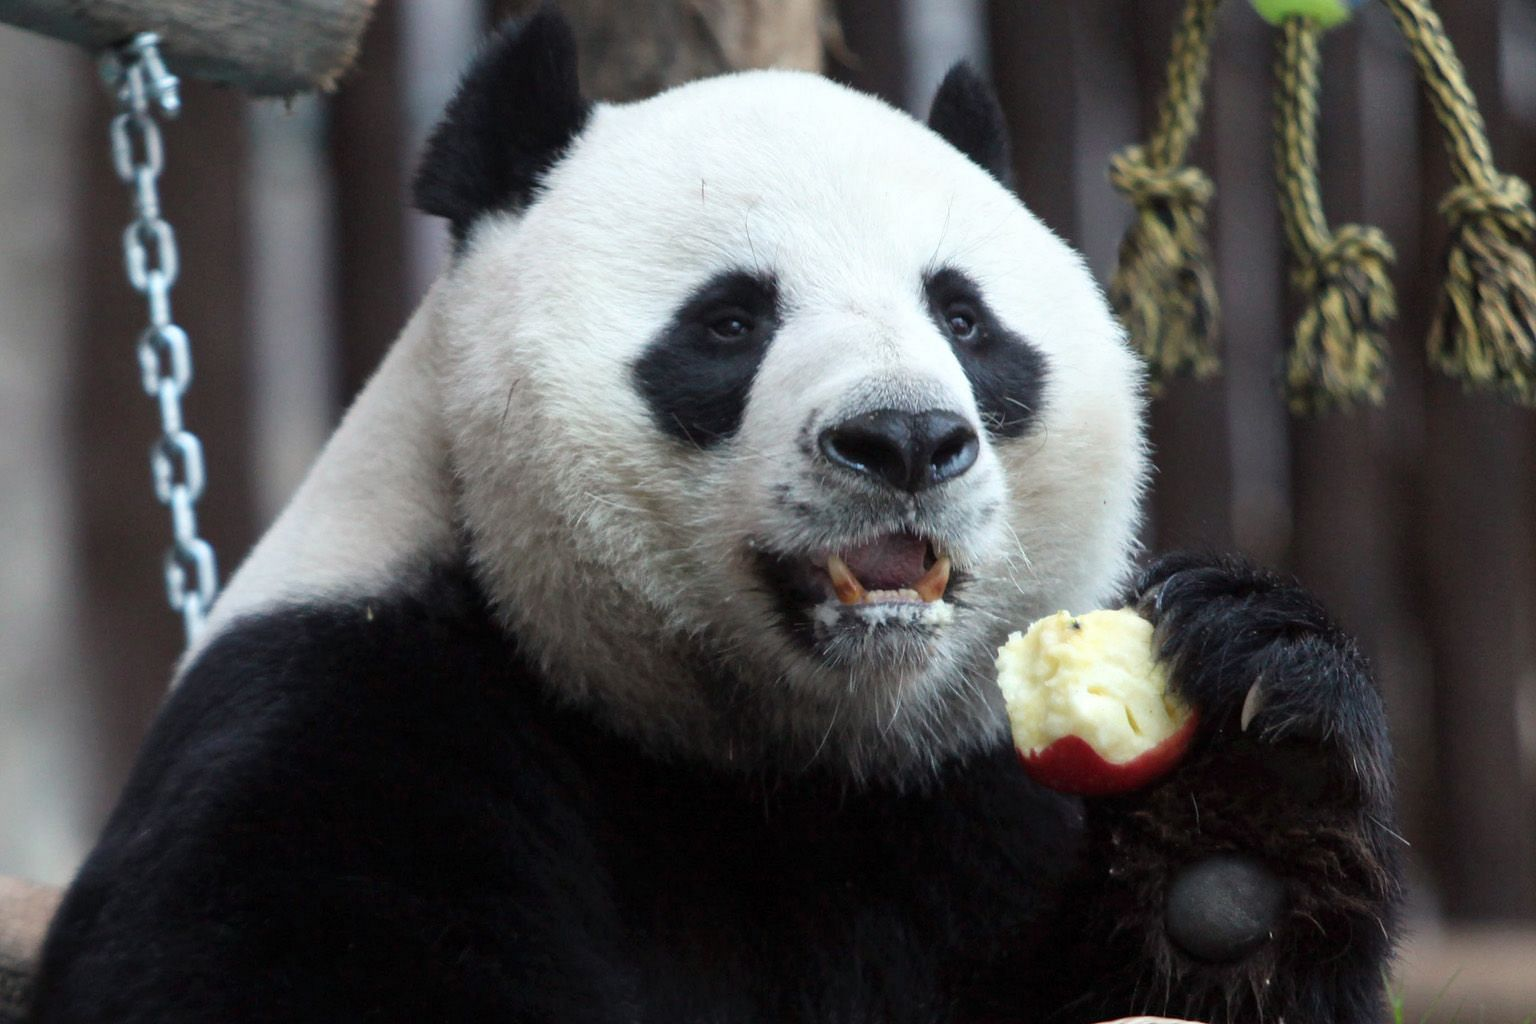 """Chinese giant male panda Chuang Chuang on his 10th birthday at Chiang Mai Zoo in northern Thailand. The panda, who died aged 19 on Monday, had been on loan from China since 2003 as part of Beijing's """"panda diplomacy""""."""